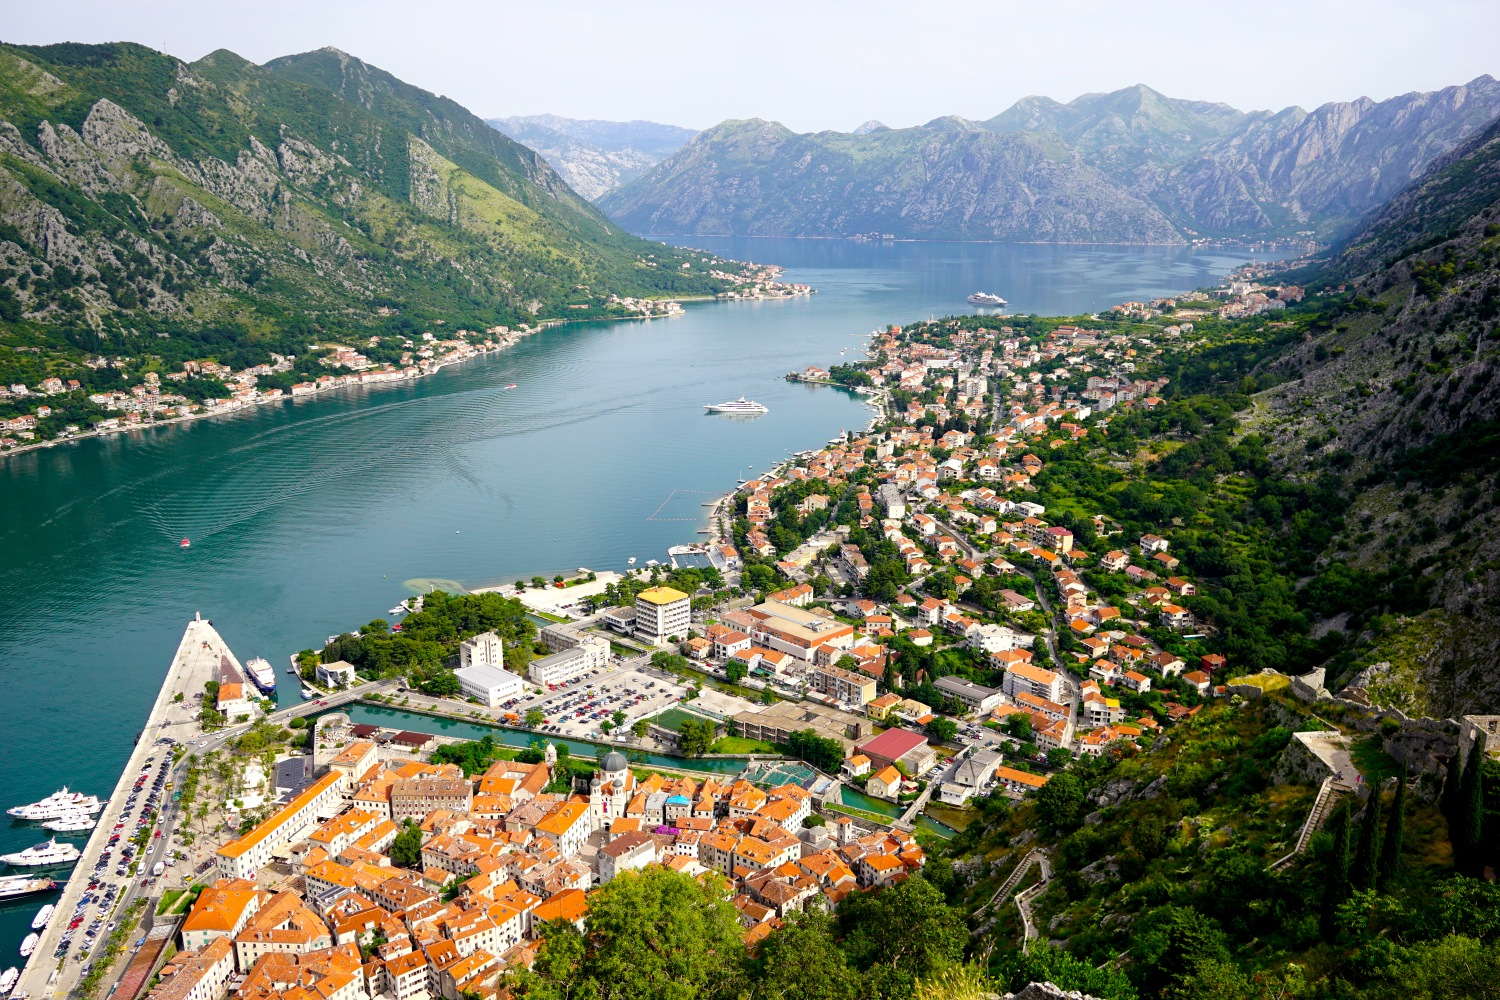 Austria Wallpaper Hd You Need To Go To Montenegro Three Days On The Bay Of